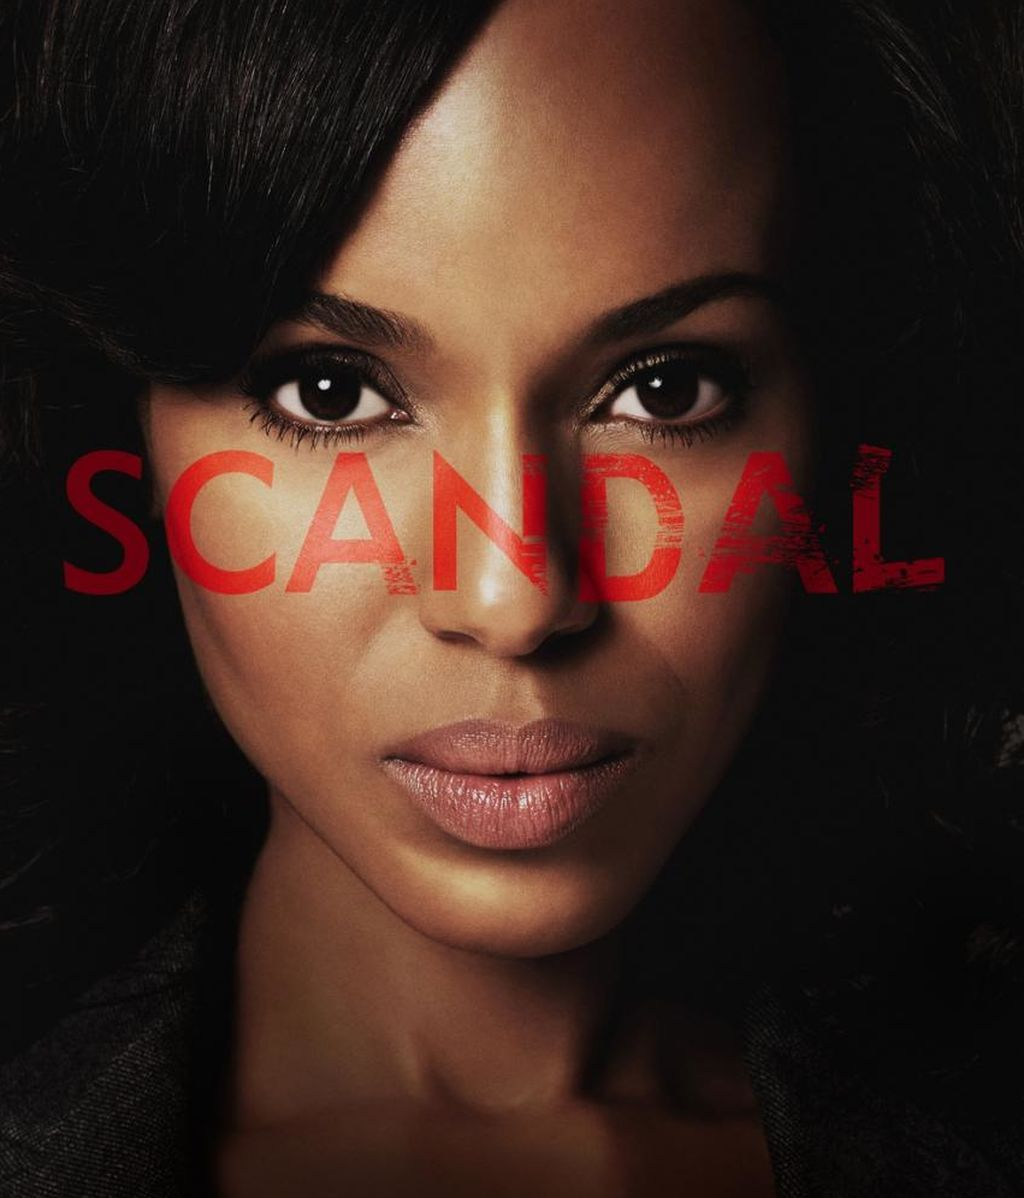 scandal_tv_series-183473413-large